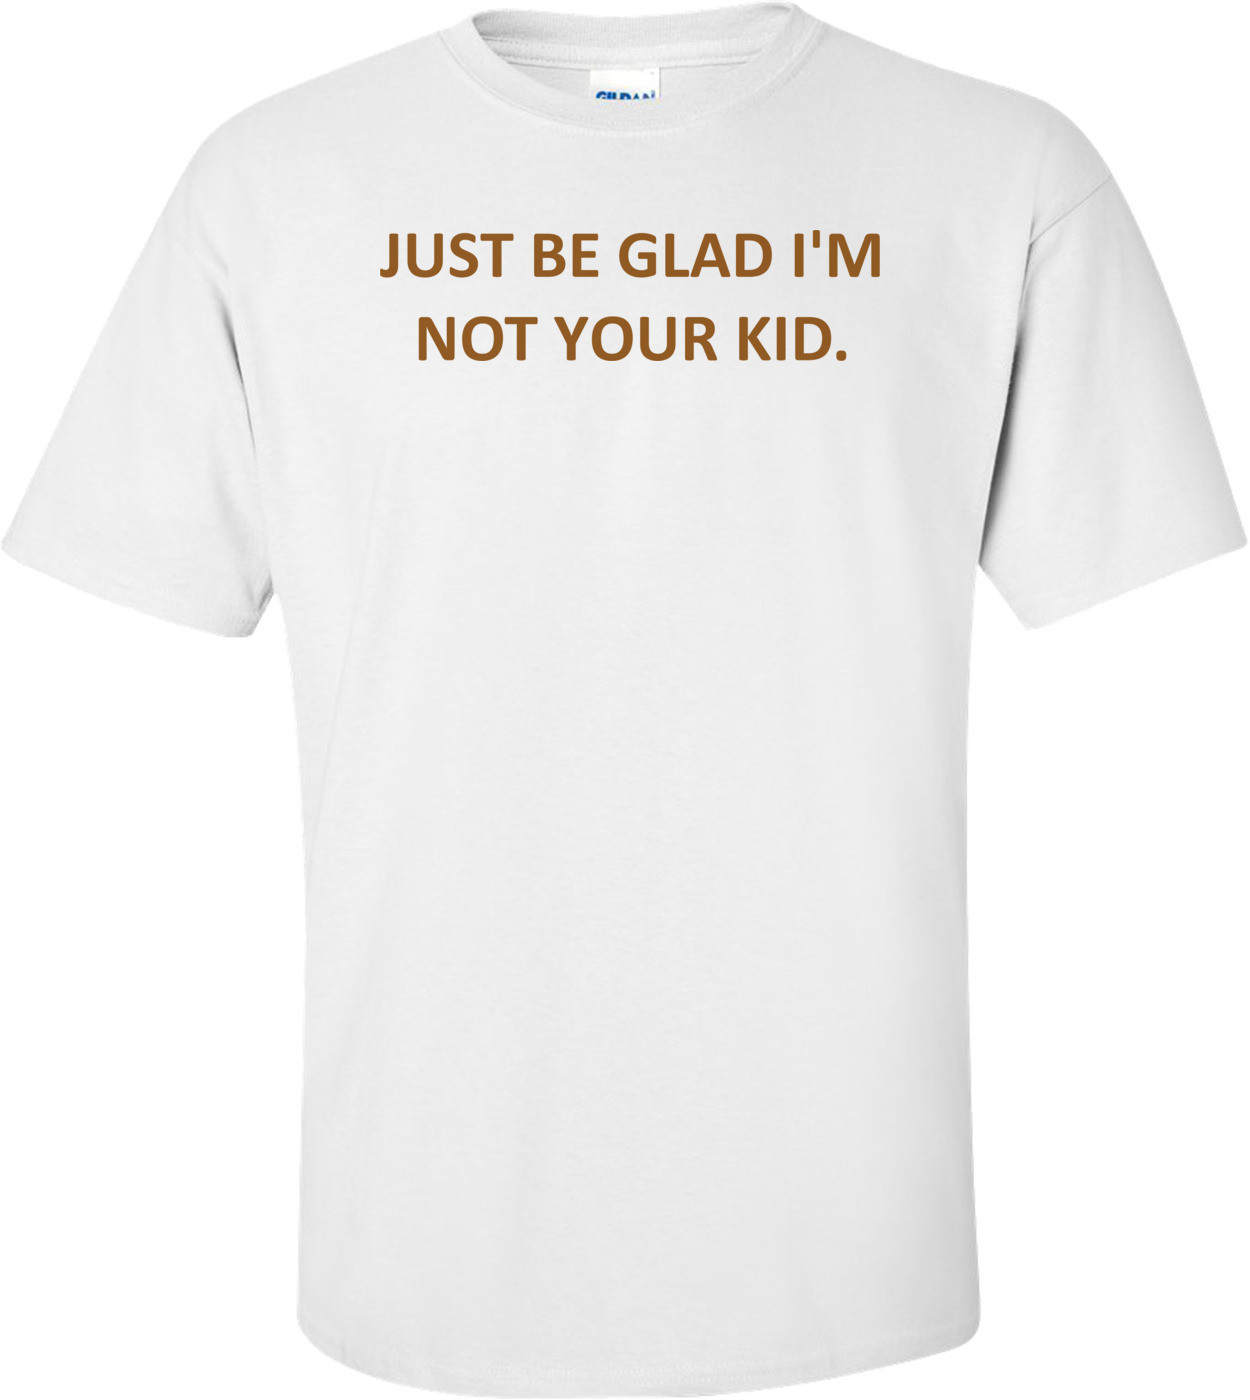 JUST BE GLAD I'M NOT YOUR KID. Shirt